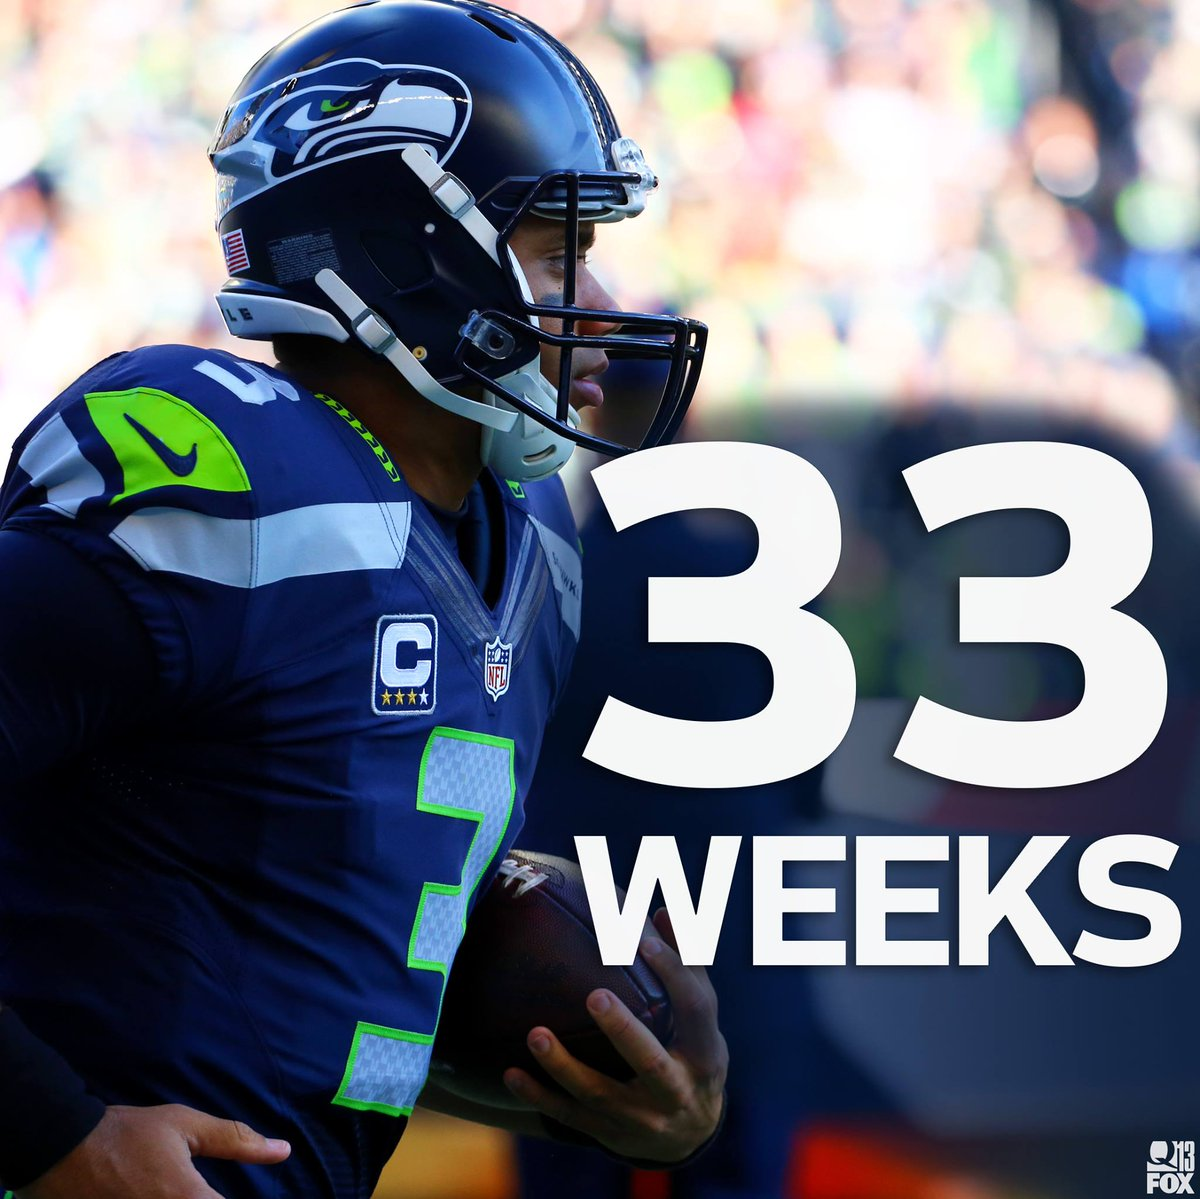 .@12s, start the countdown: There are 33 weeks until the Seattle @Seahawks kick off the 2016 regular season! https://t.co/oFCShNkwQW